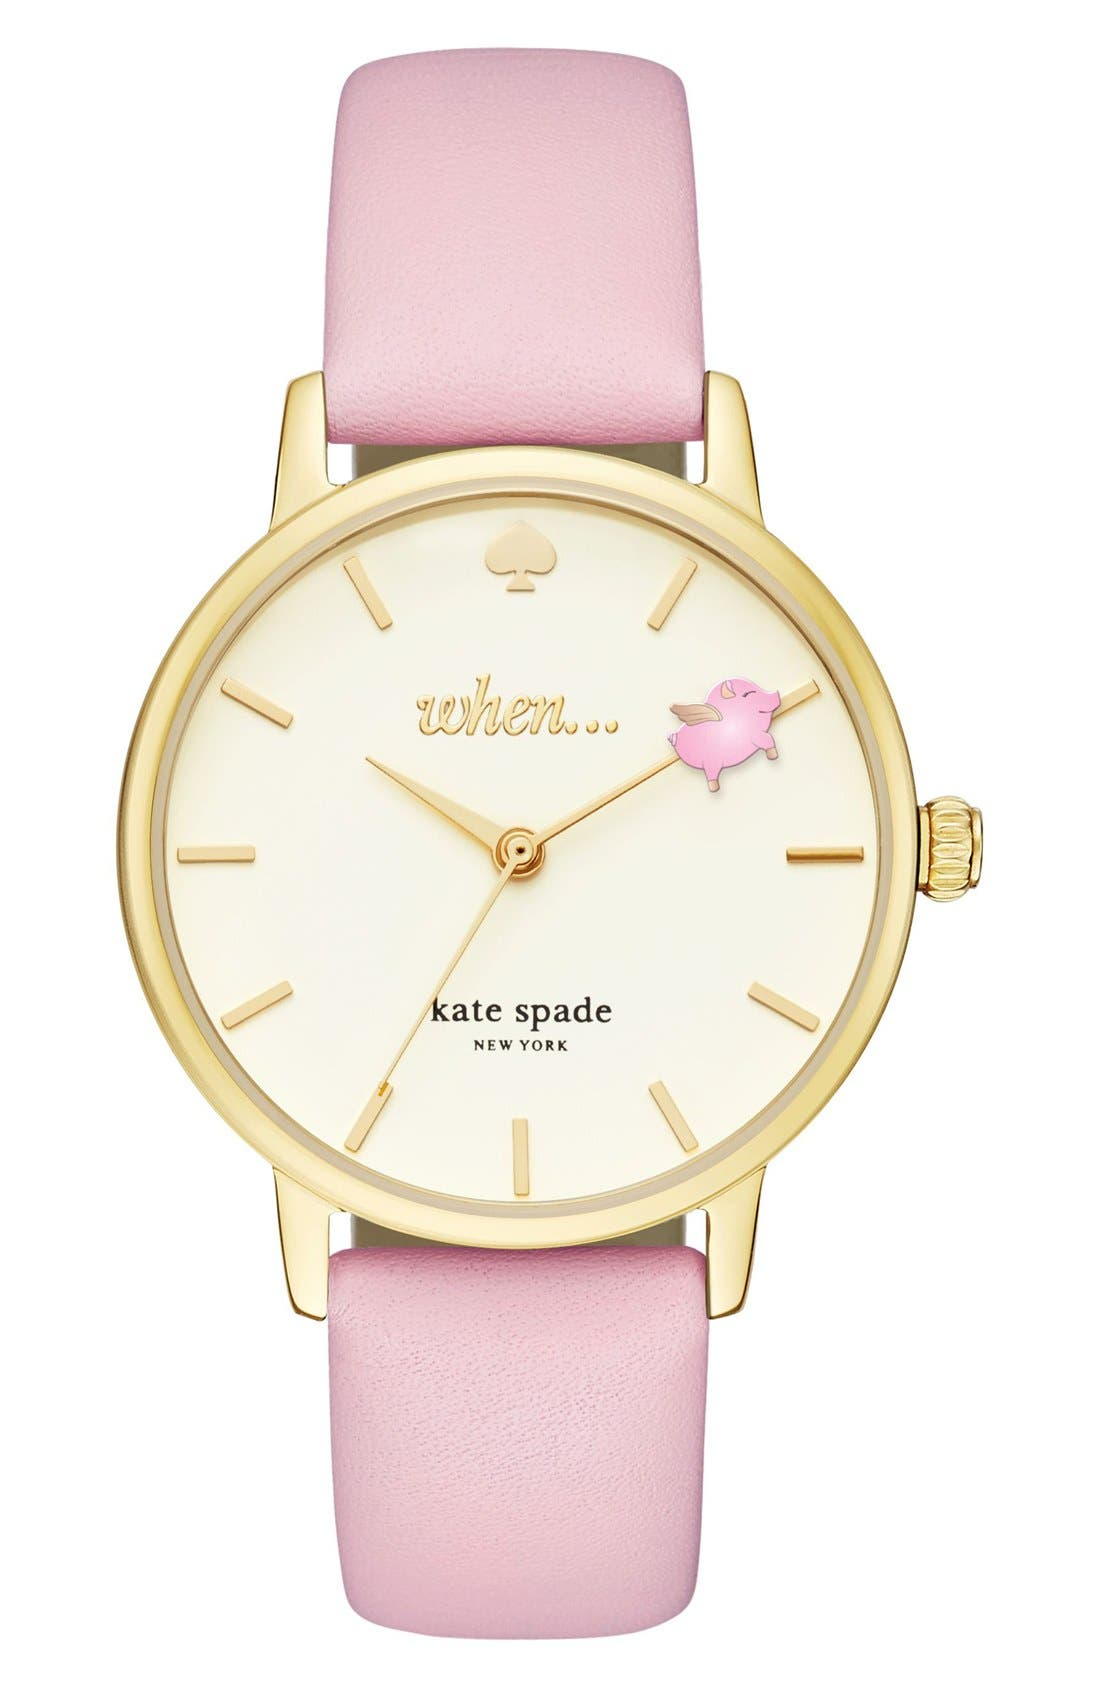 KATE SPADE NEW YORK metro round leather strap watch, 34mm